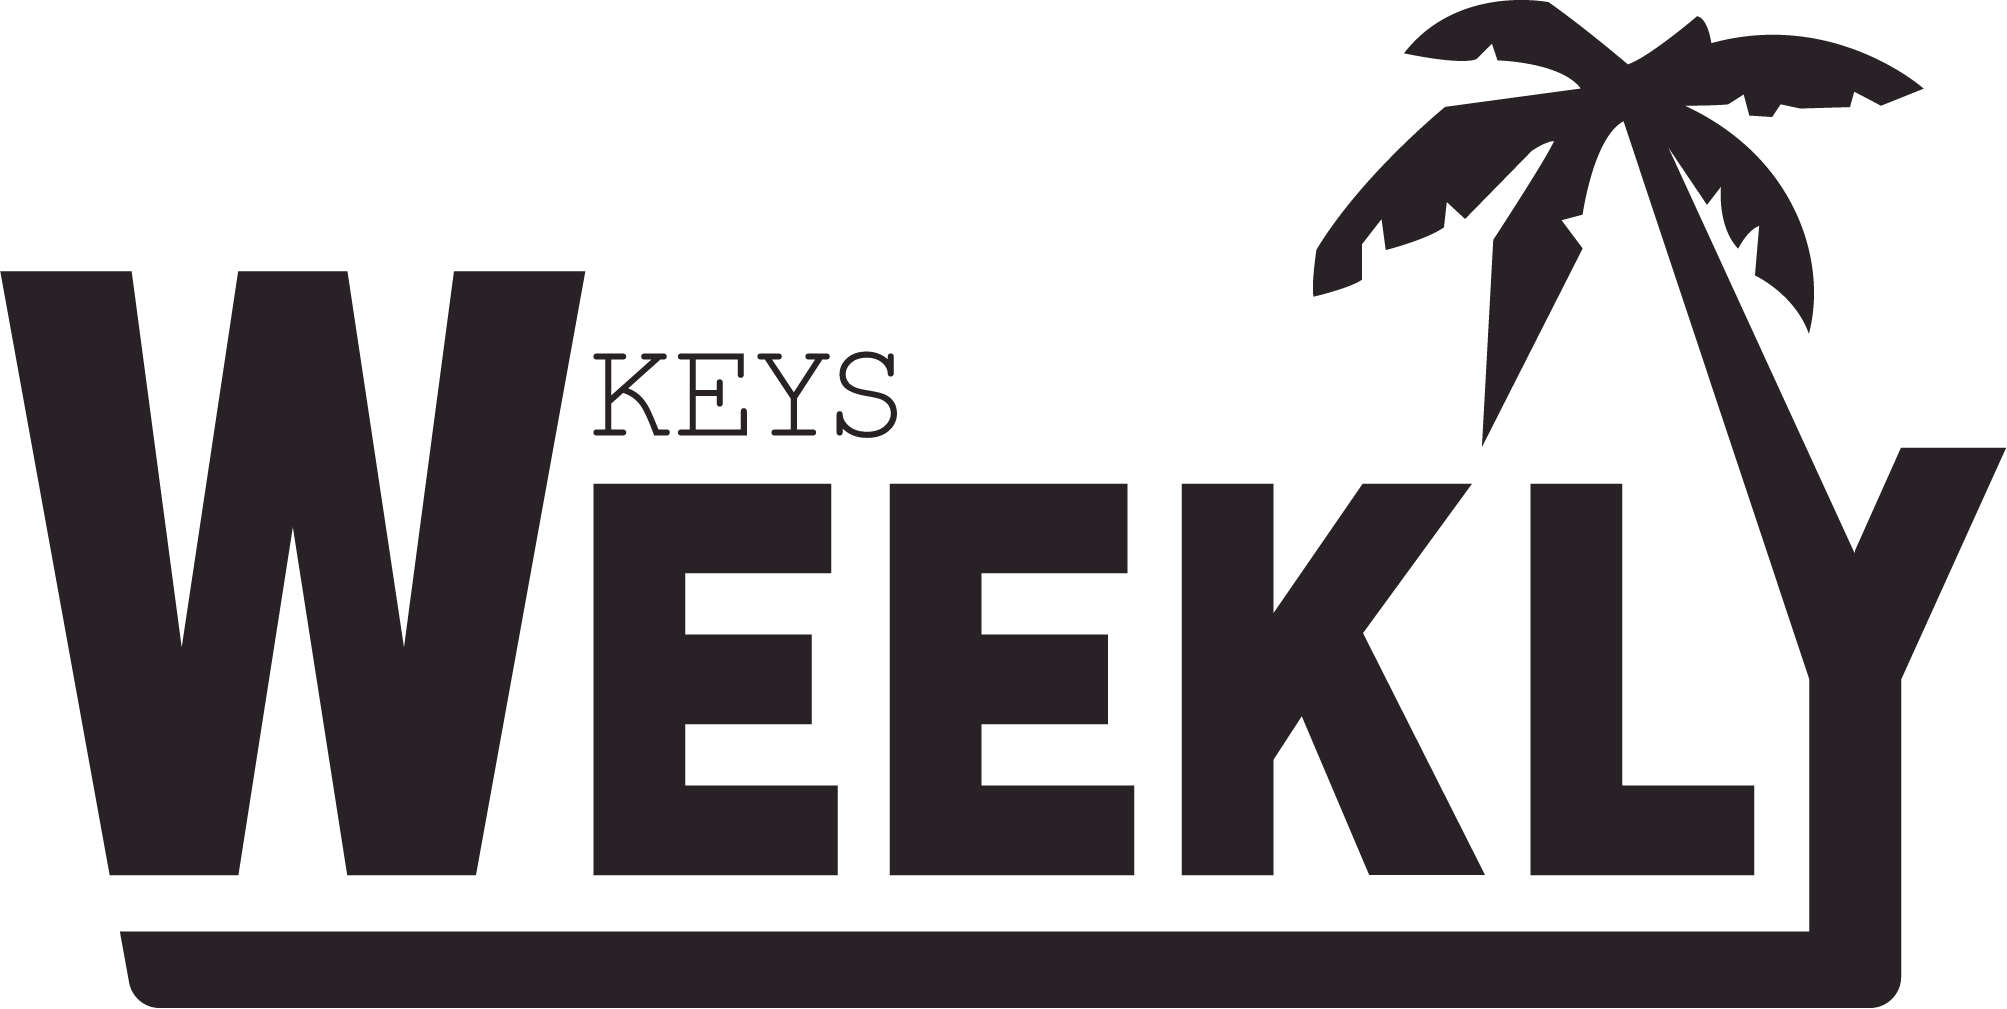 keys-weekly-logo.png